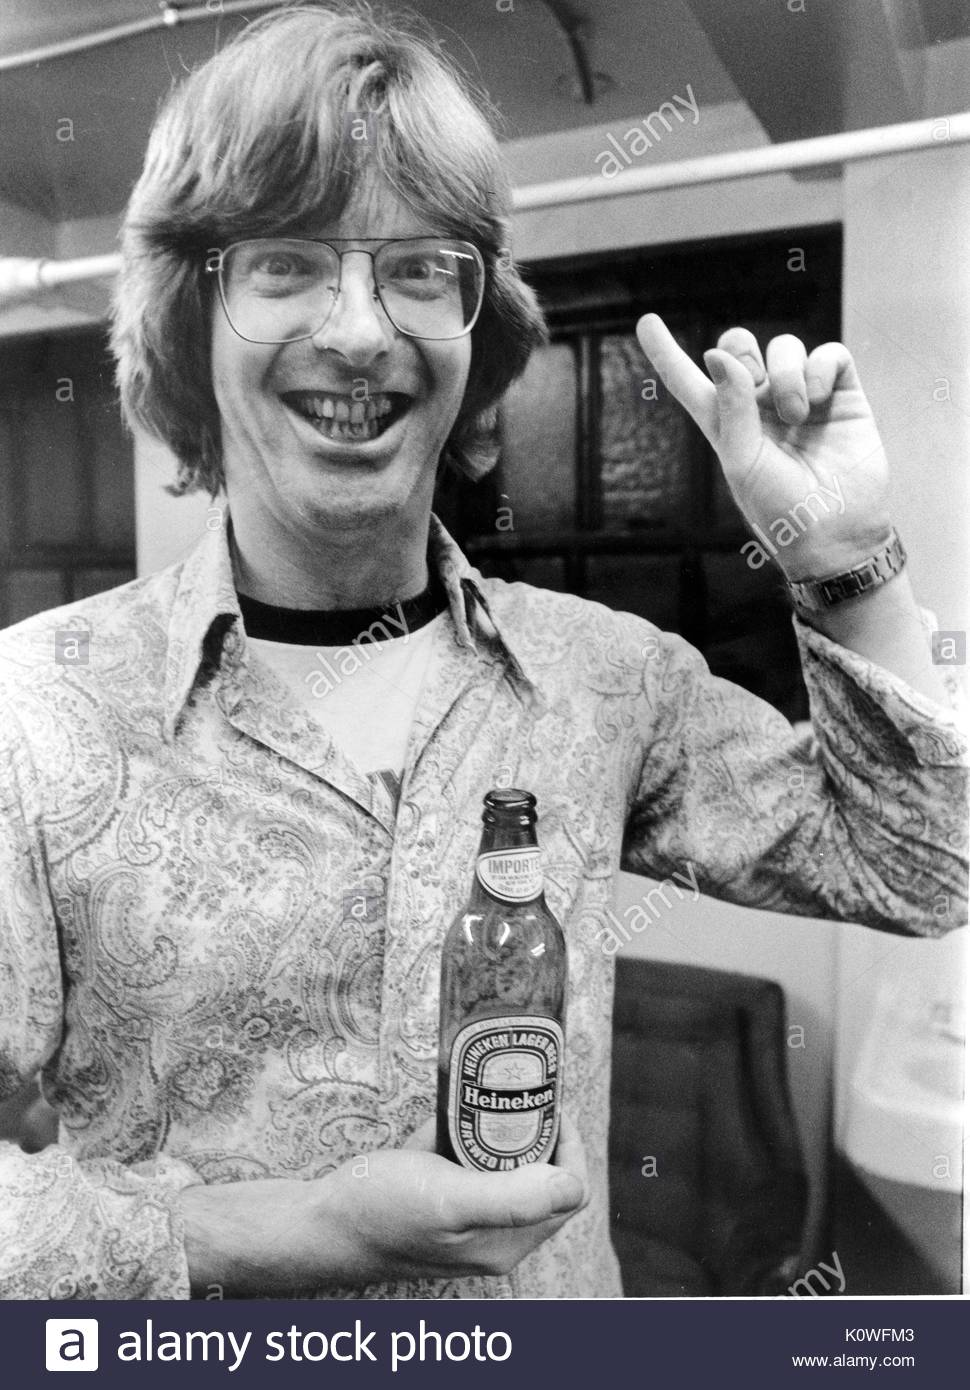 phil-lesh-of-the-grateful-dead-with-hein